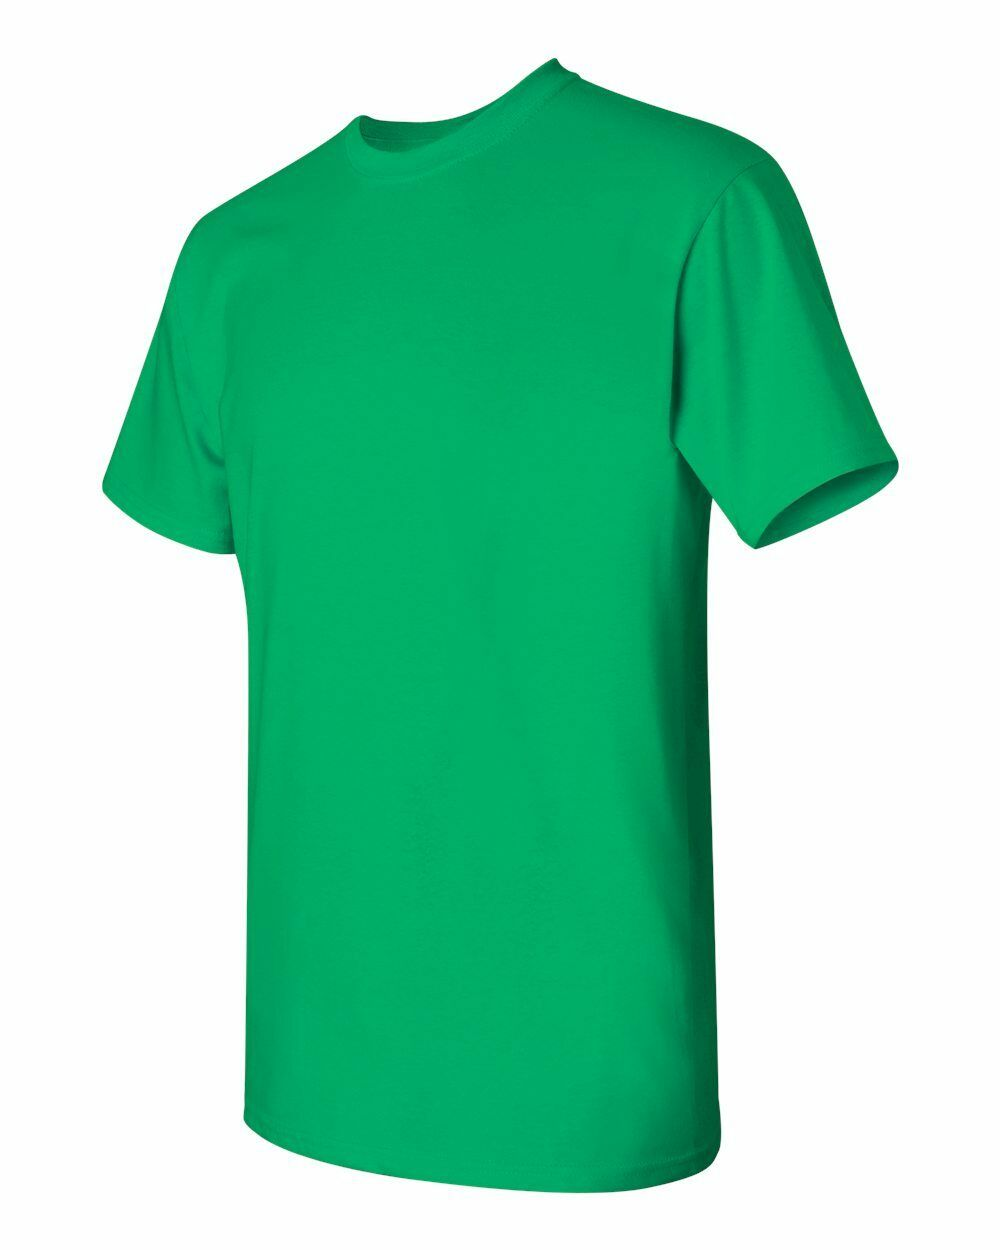 20 Bulk Lot Gildan Heavy 2XL 5000 Wholesale Irish Grün Adult Blank T-Shirts XXL